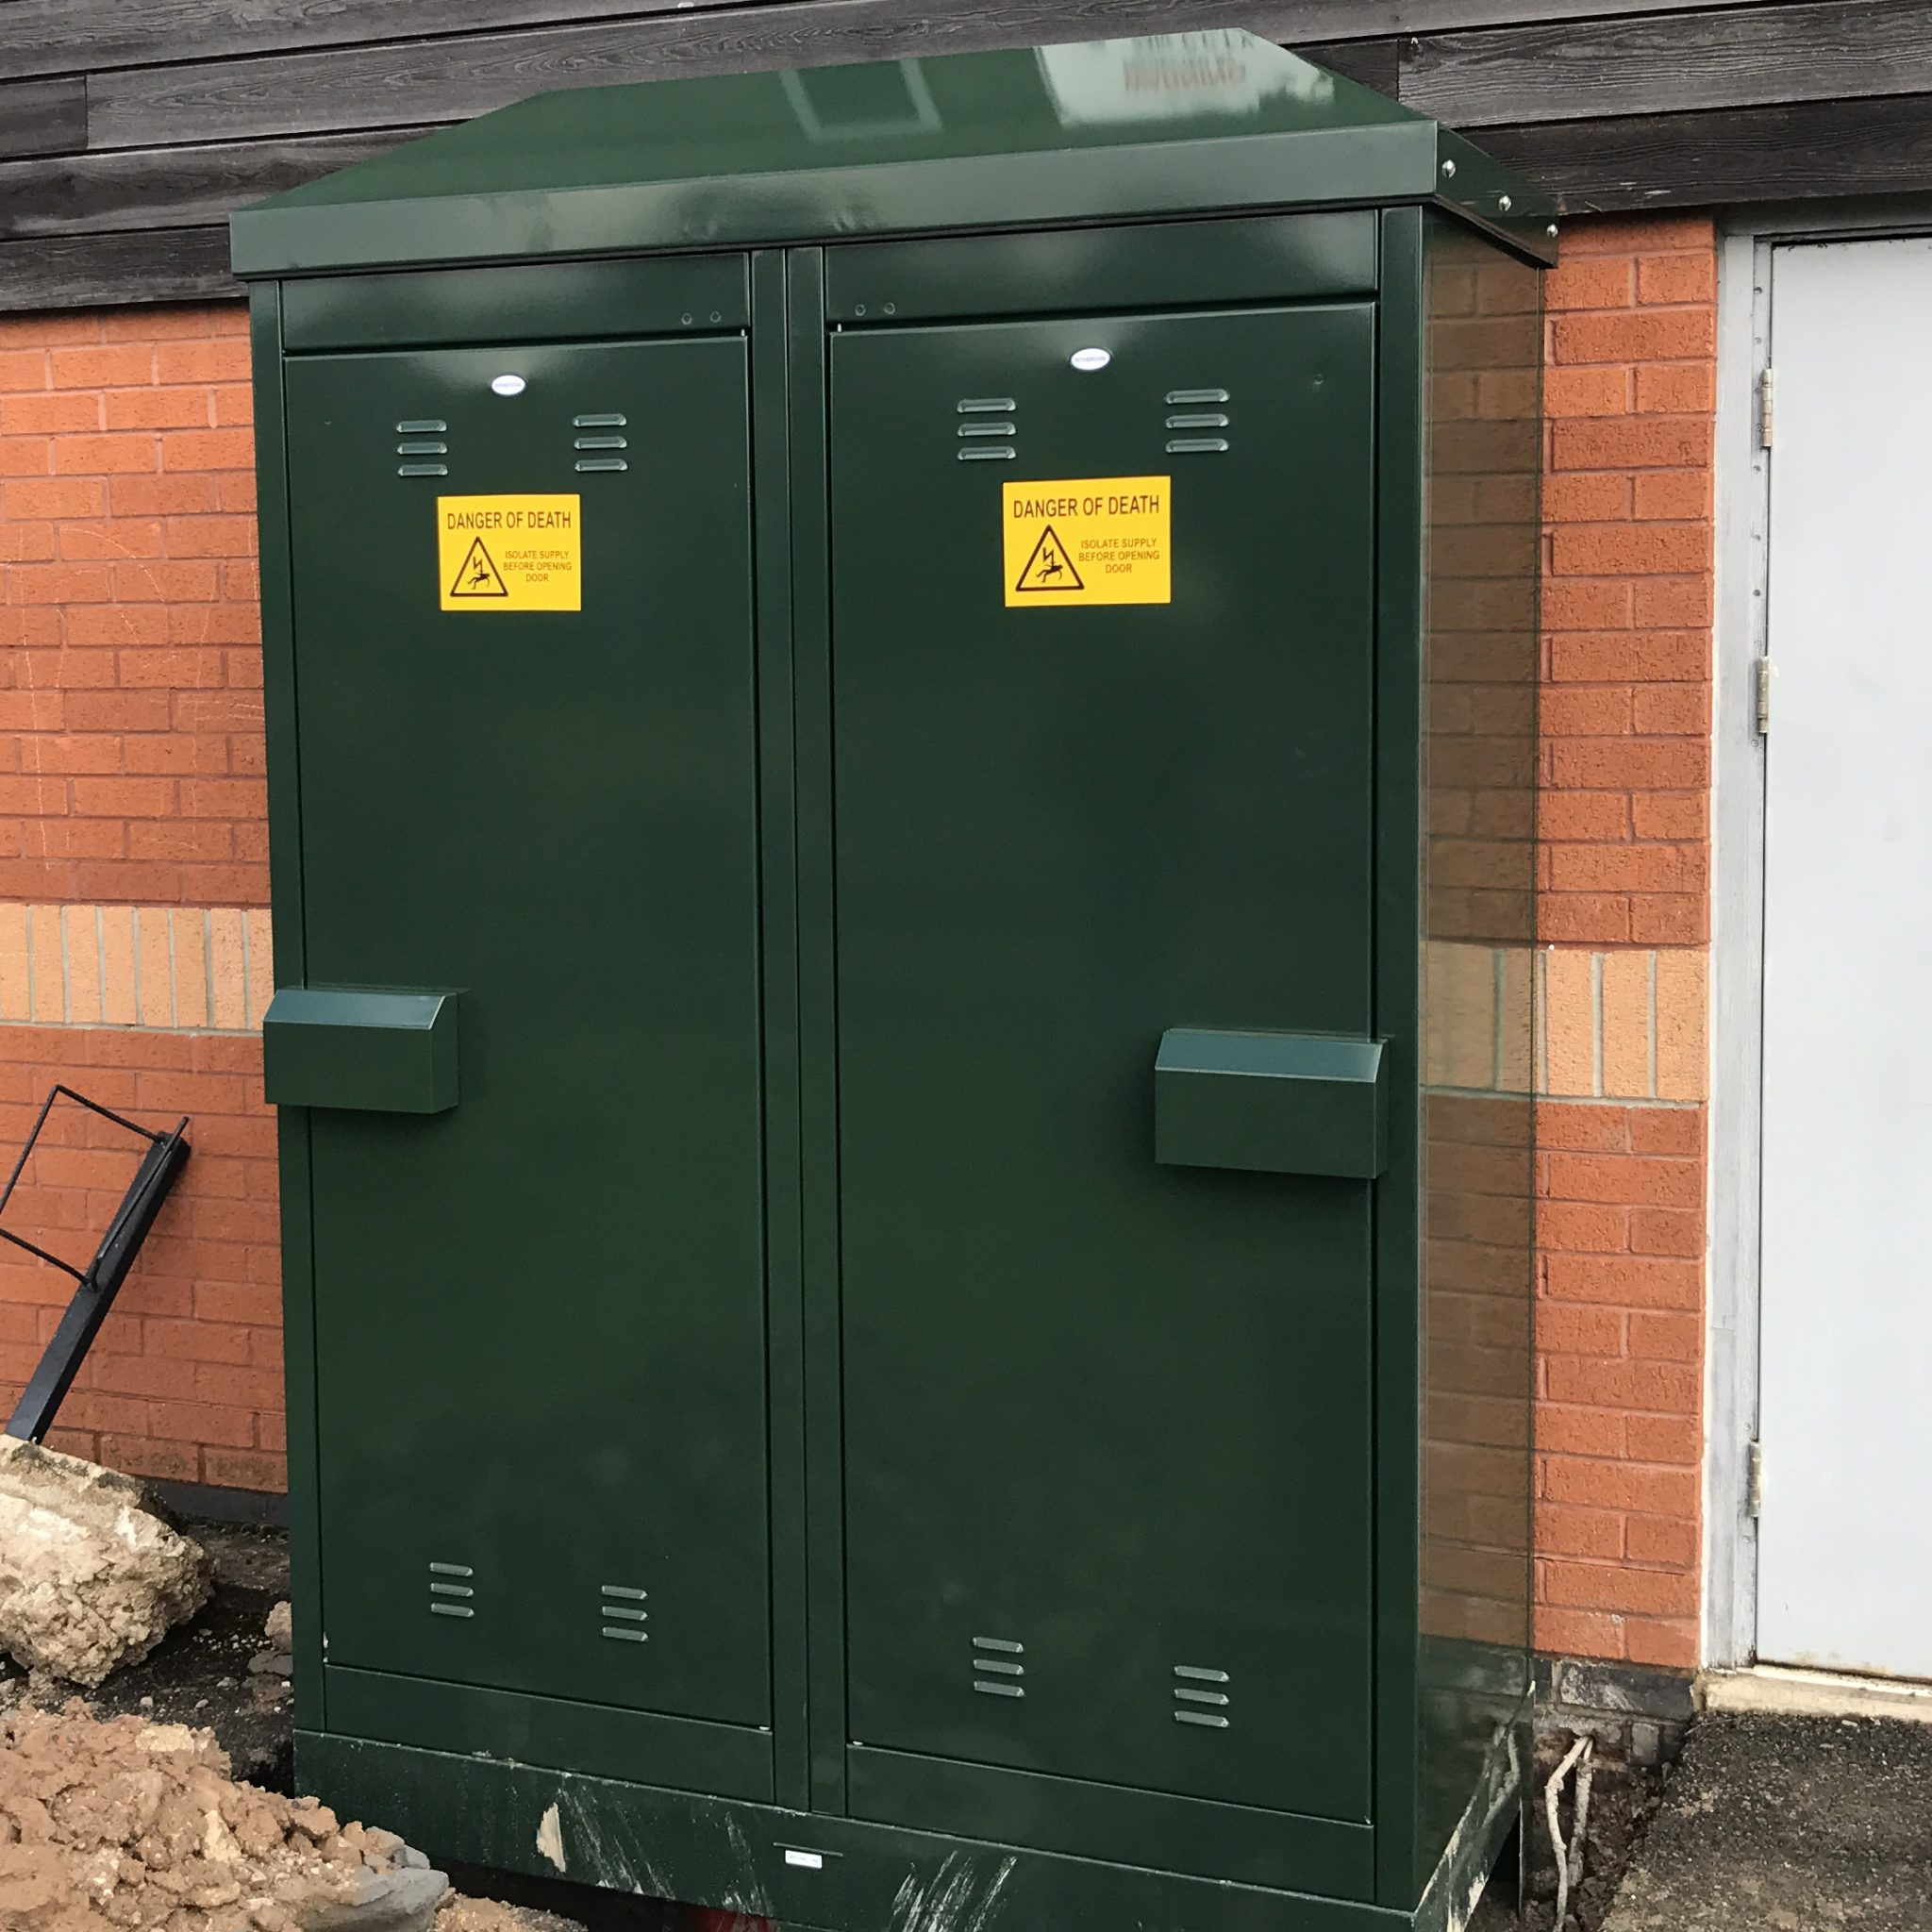 Temporary Builders Supply Kiosk 300 amp temporary electrical connection